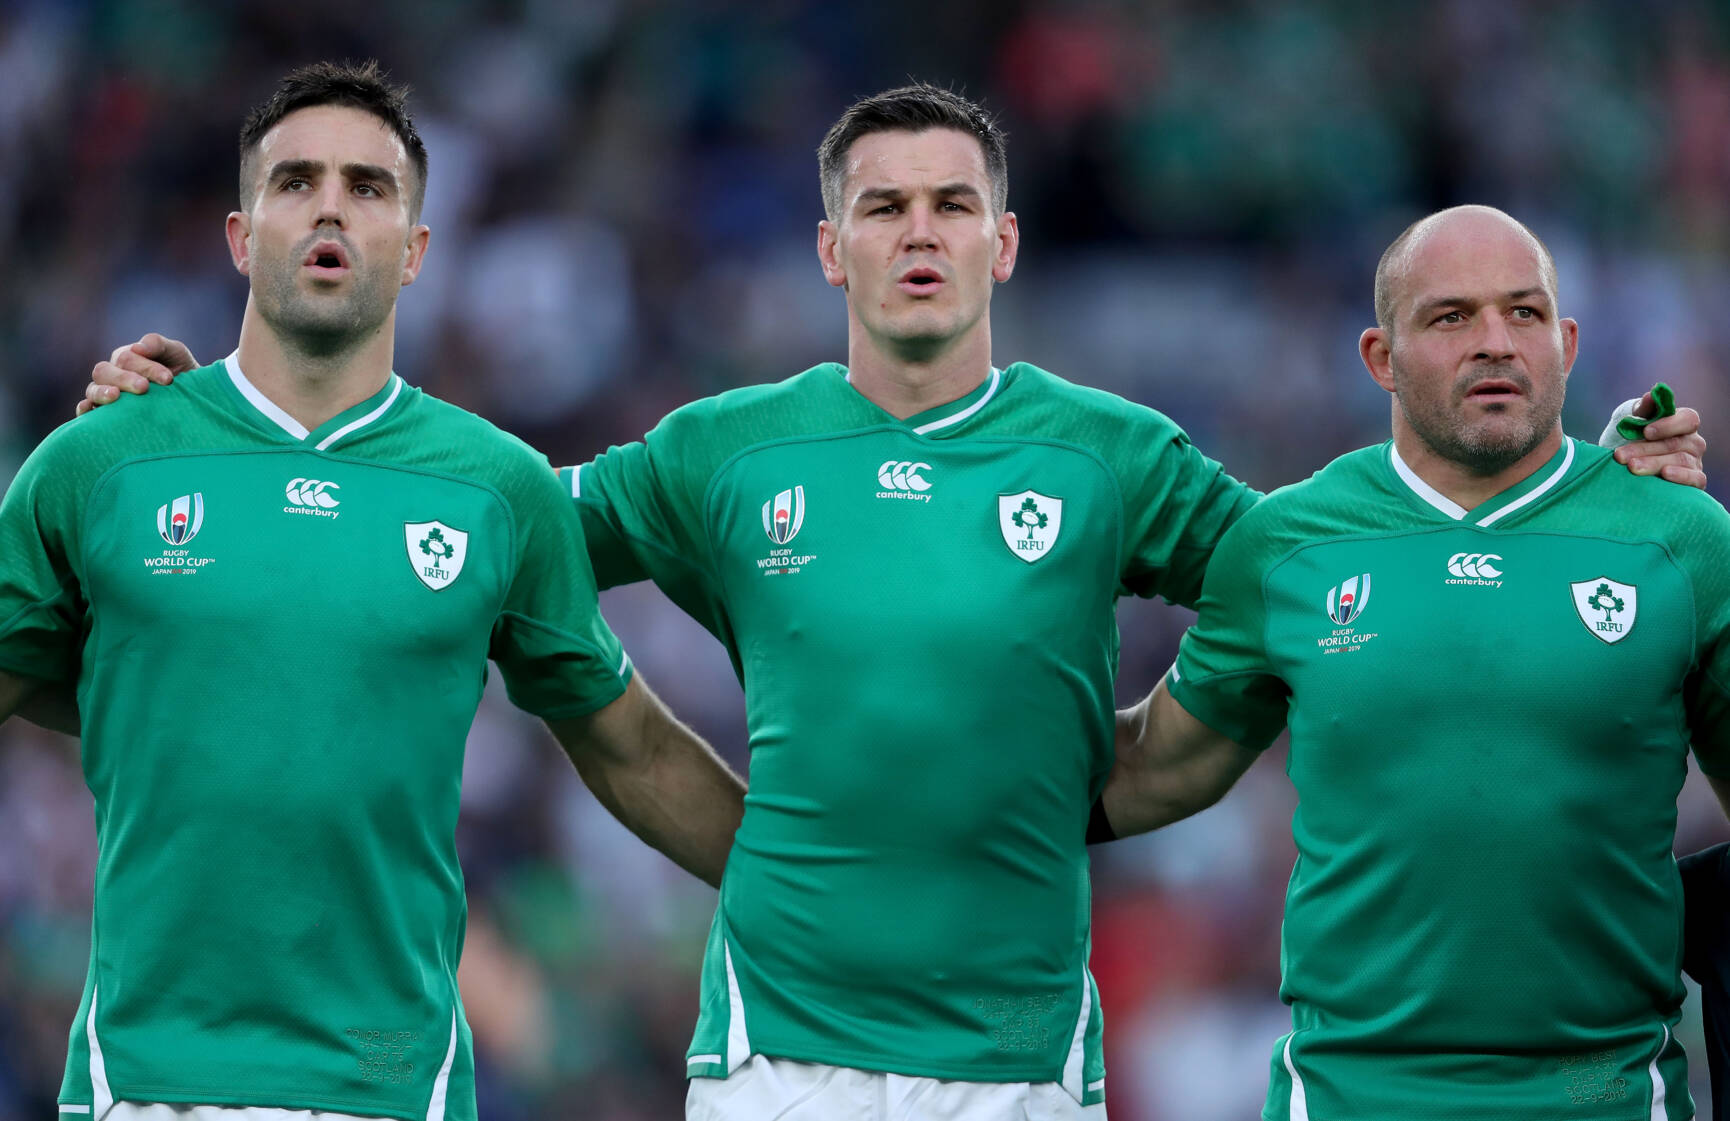 2019 Rugby World Cup Pool A, International Stadium, Yokohama, Japan 22/9/2019 Ireland vs Scotland Ireland's Conor Murray, Jonathan Sexton and Rory Best during the anthems Mandatory Credit ©INPHO/Dan Sheridan